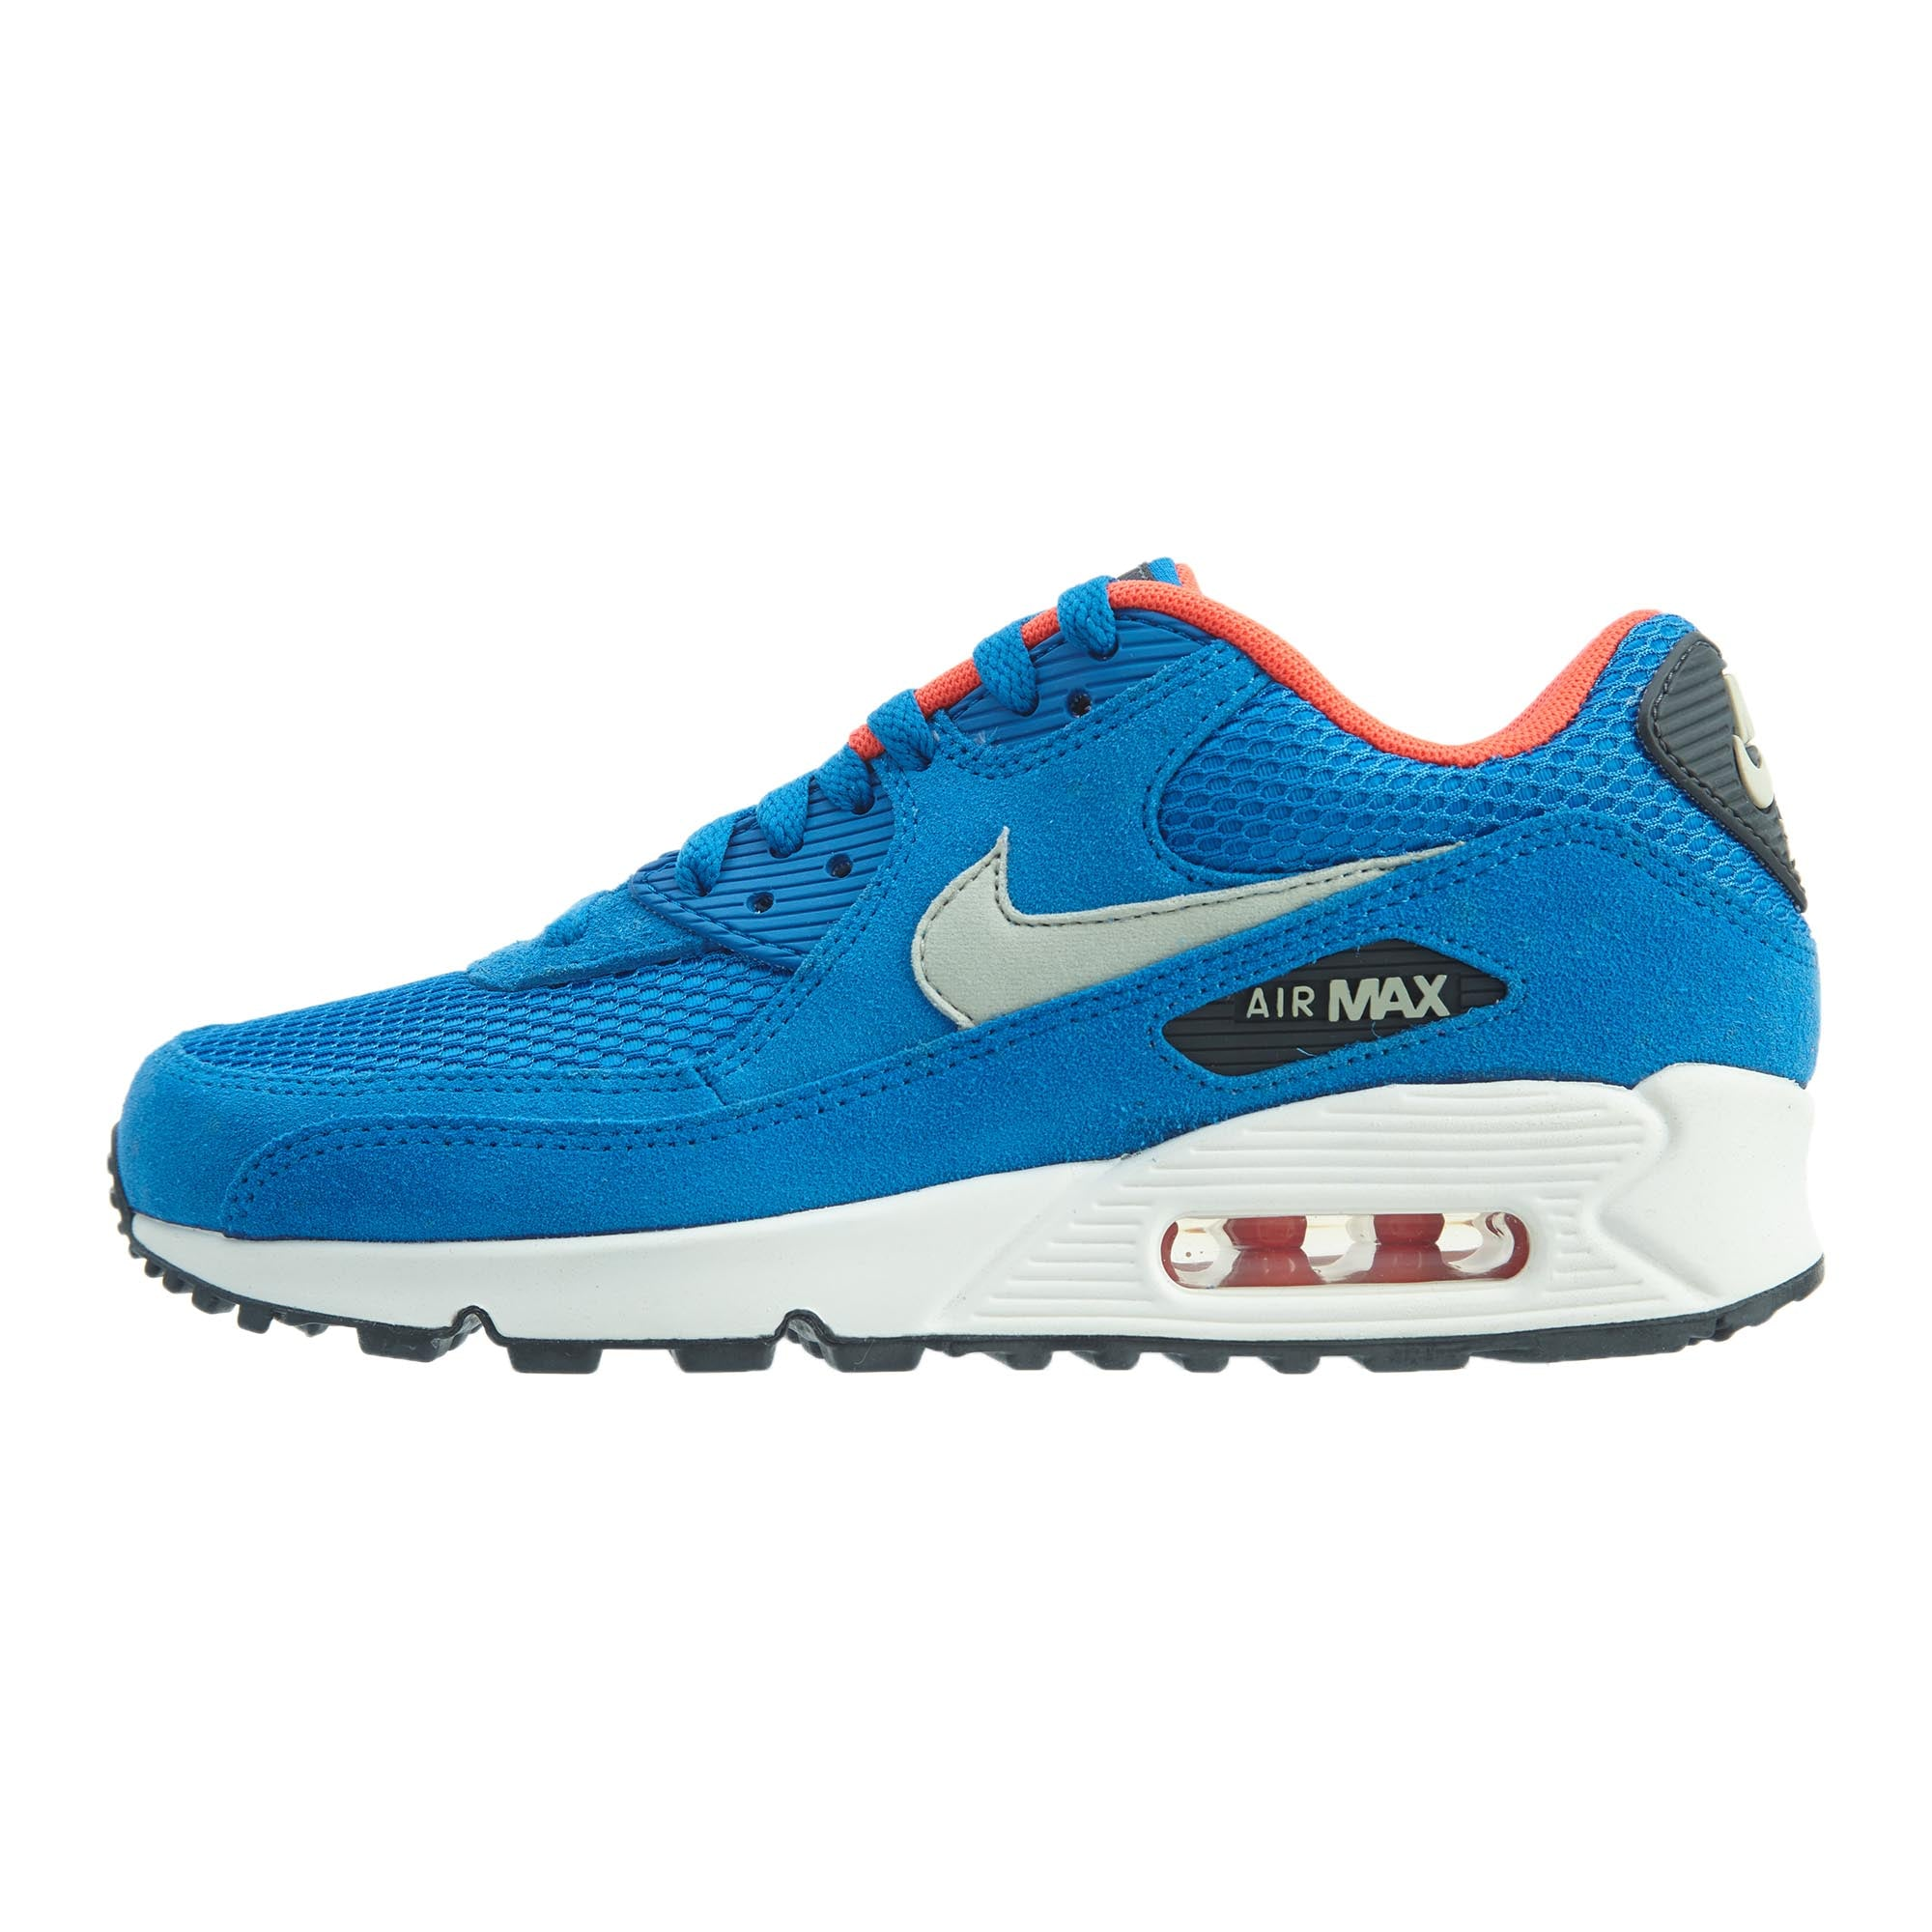 b6c9ede4e5 Nike Air Max 90 Essential Mens Style : 537384-407